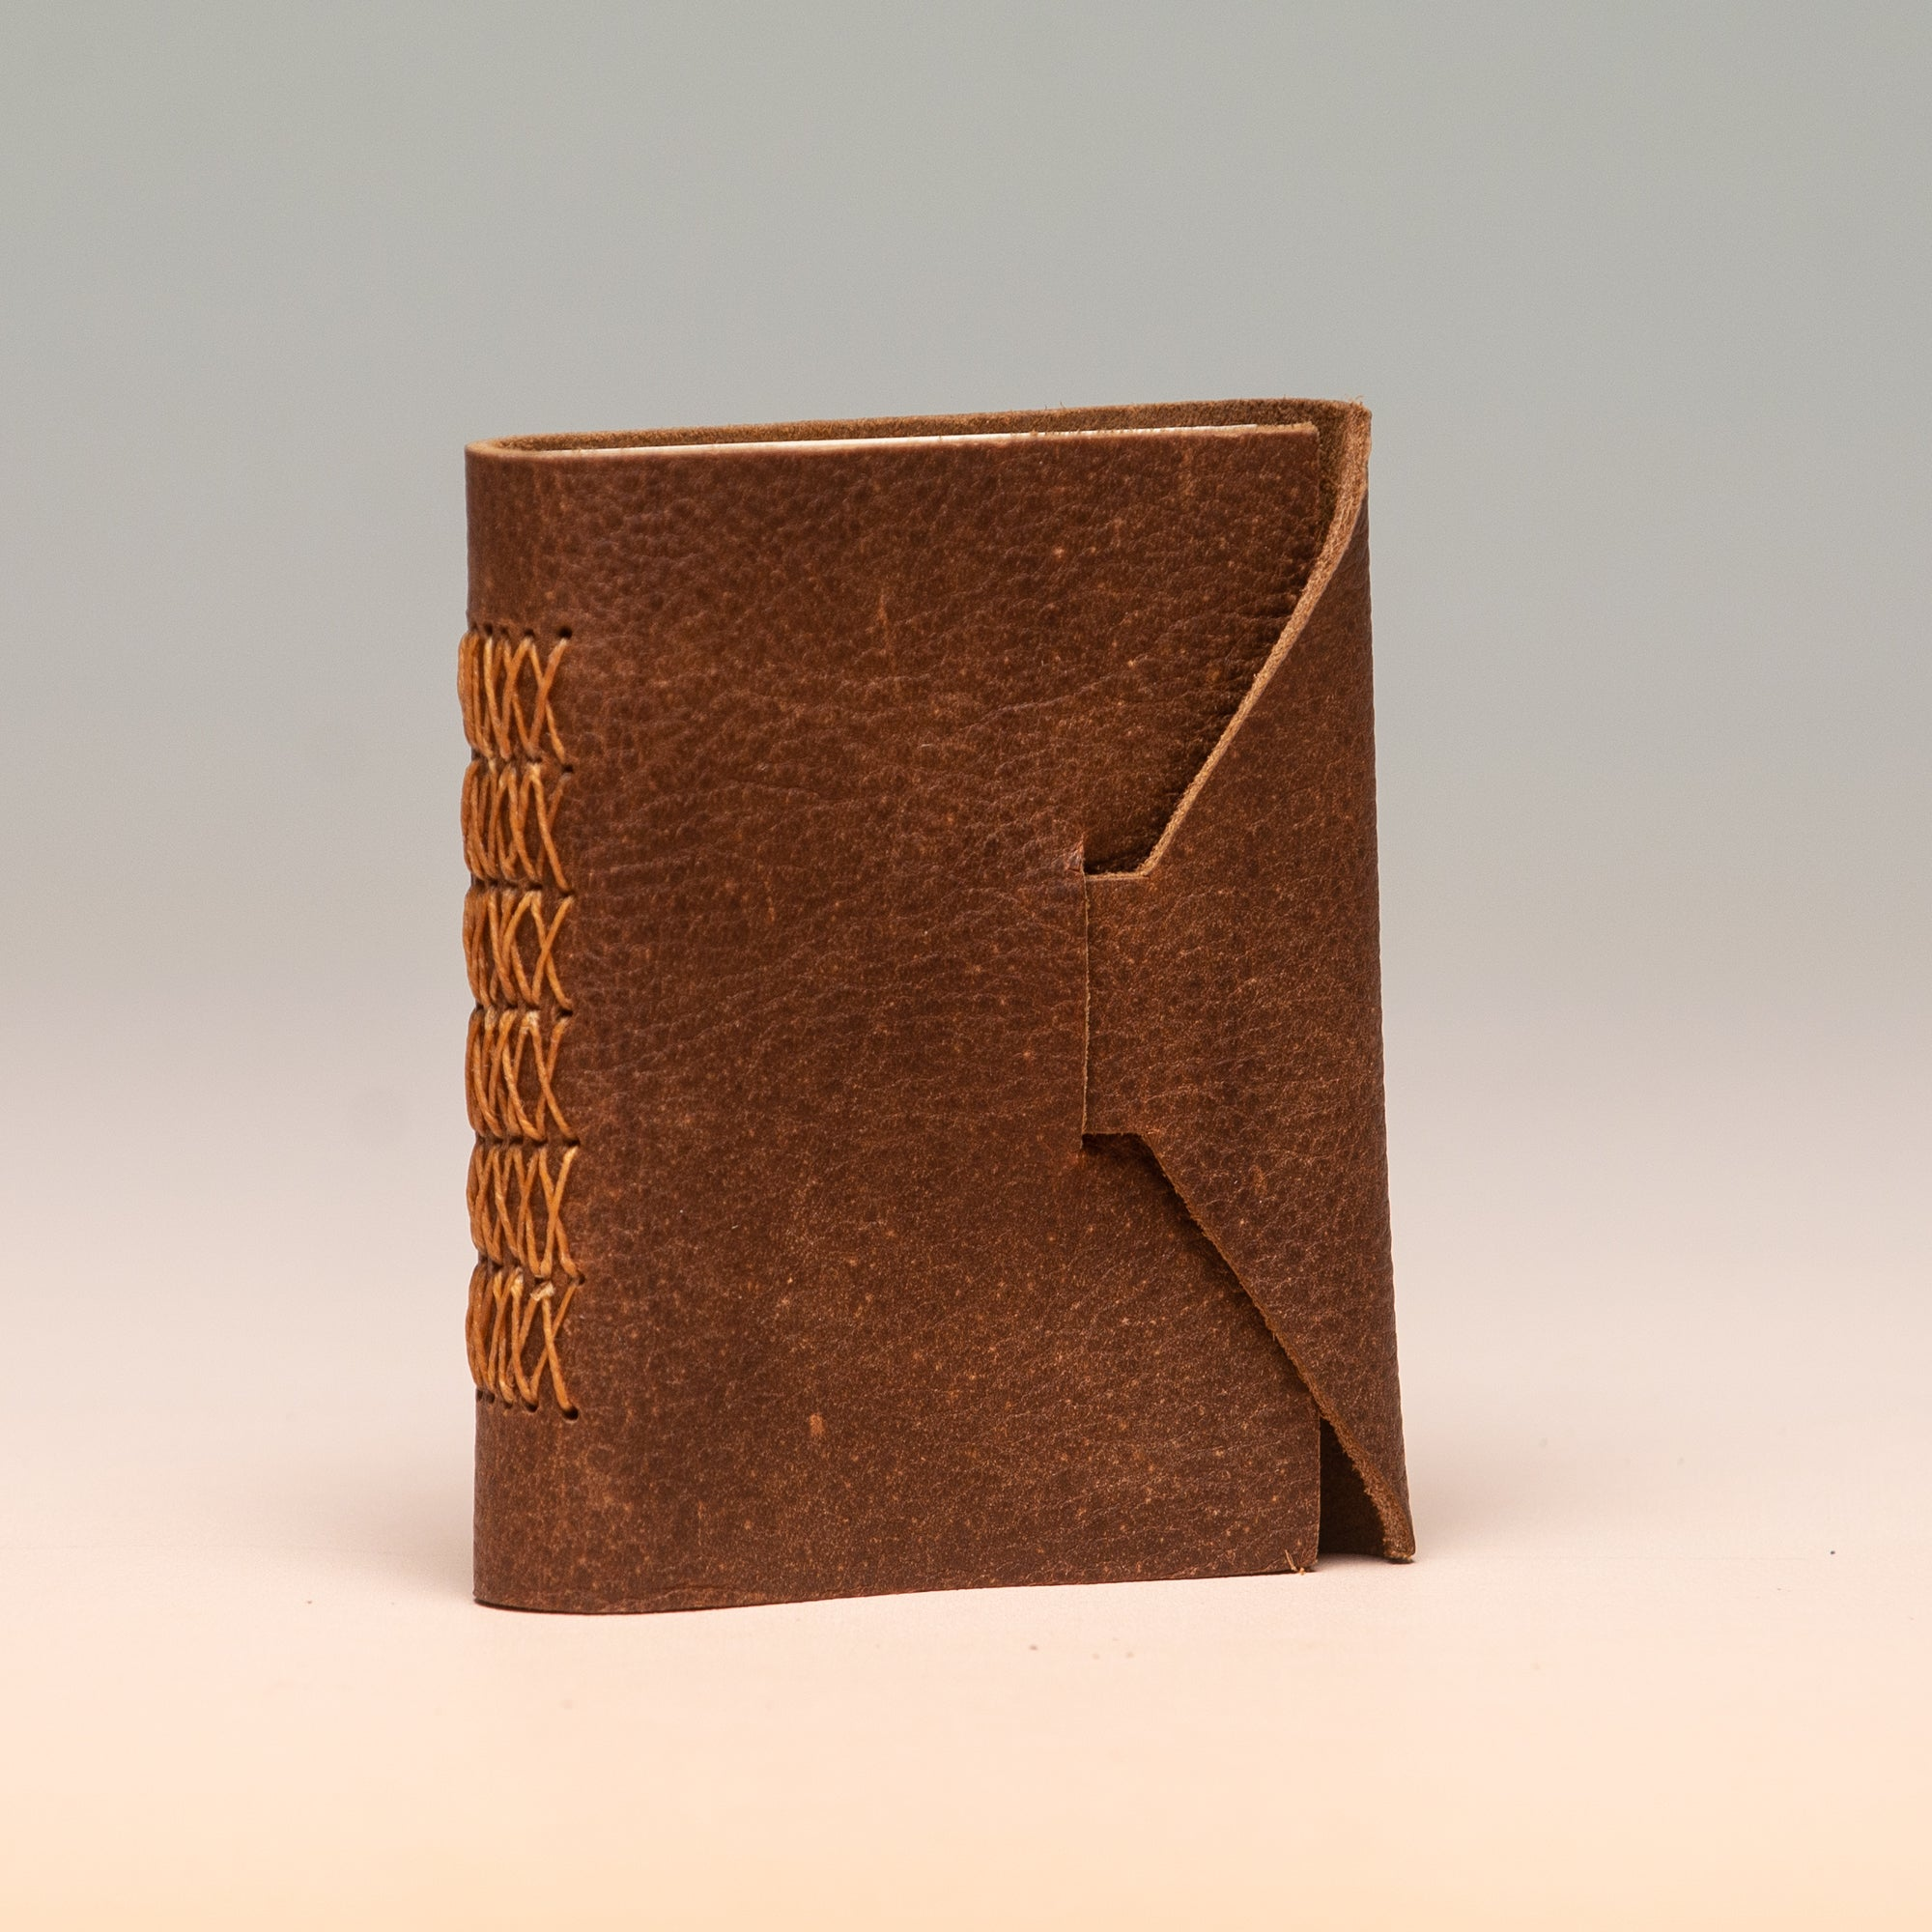 Hand-Bound Hand Sewn Leather Pocket Journal in Rich Brown